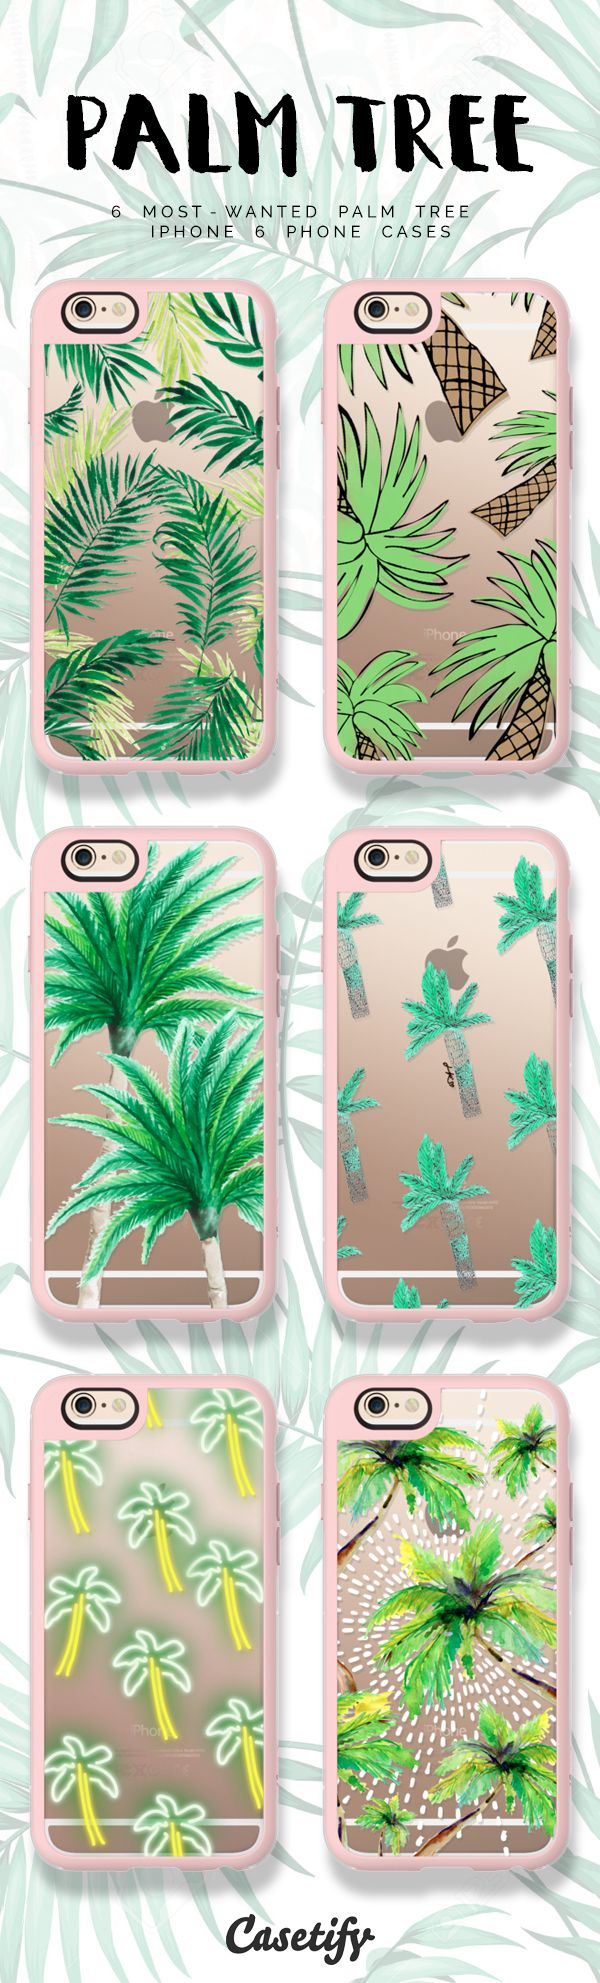 Top 6 palm trees iPhone 6 phone case designs | Click through to see more protective iPhone phone case ideas >>> https://www.casetify.com/artworks/CafRr3Y5Jy #gardenart | @casetify